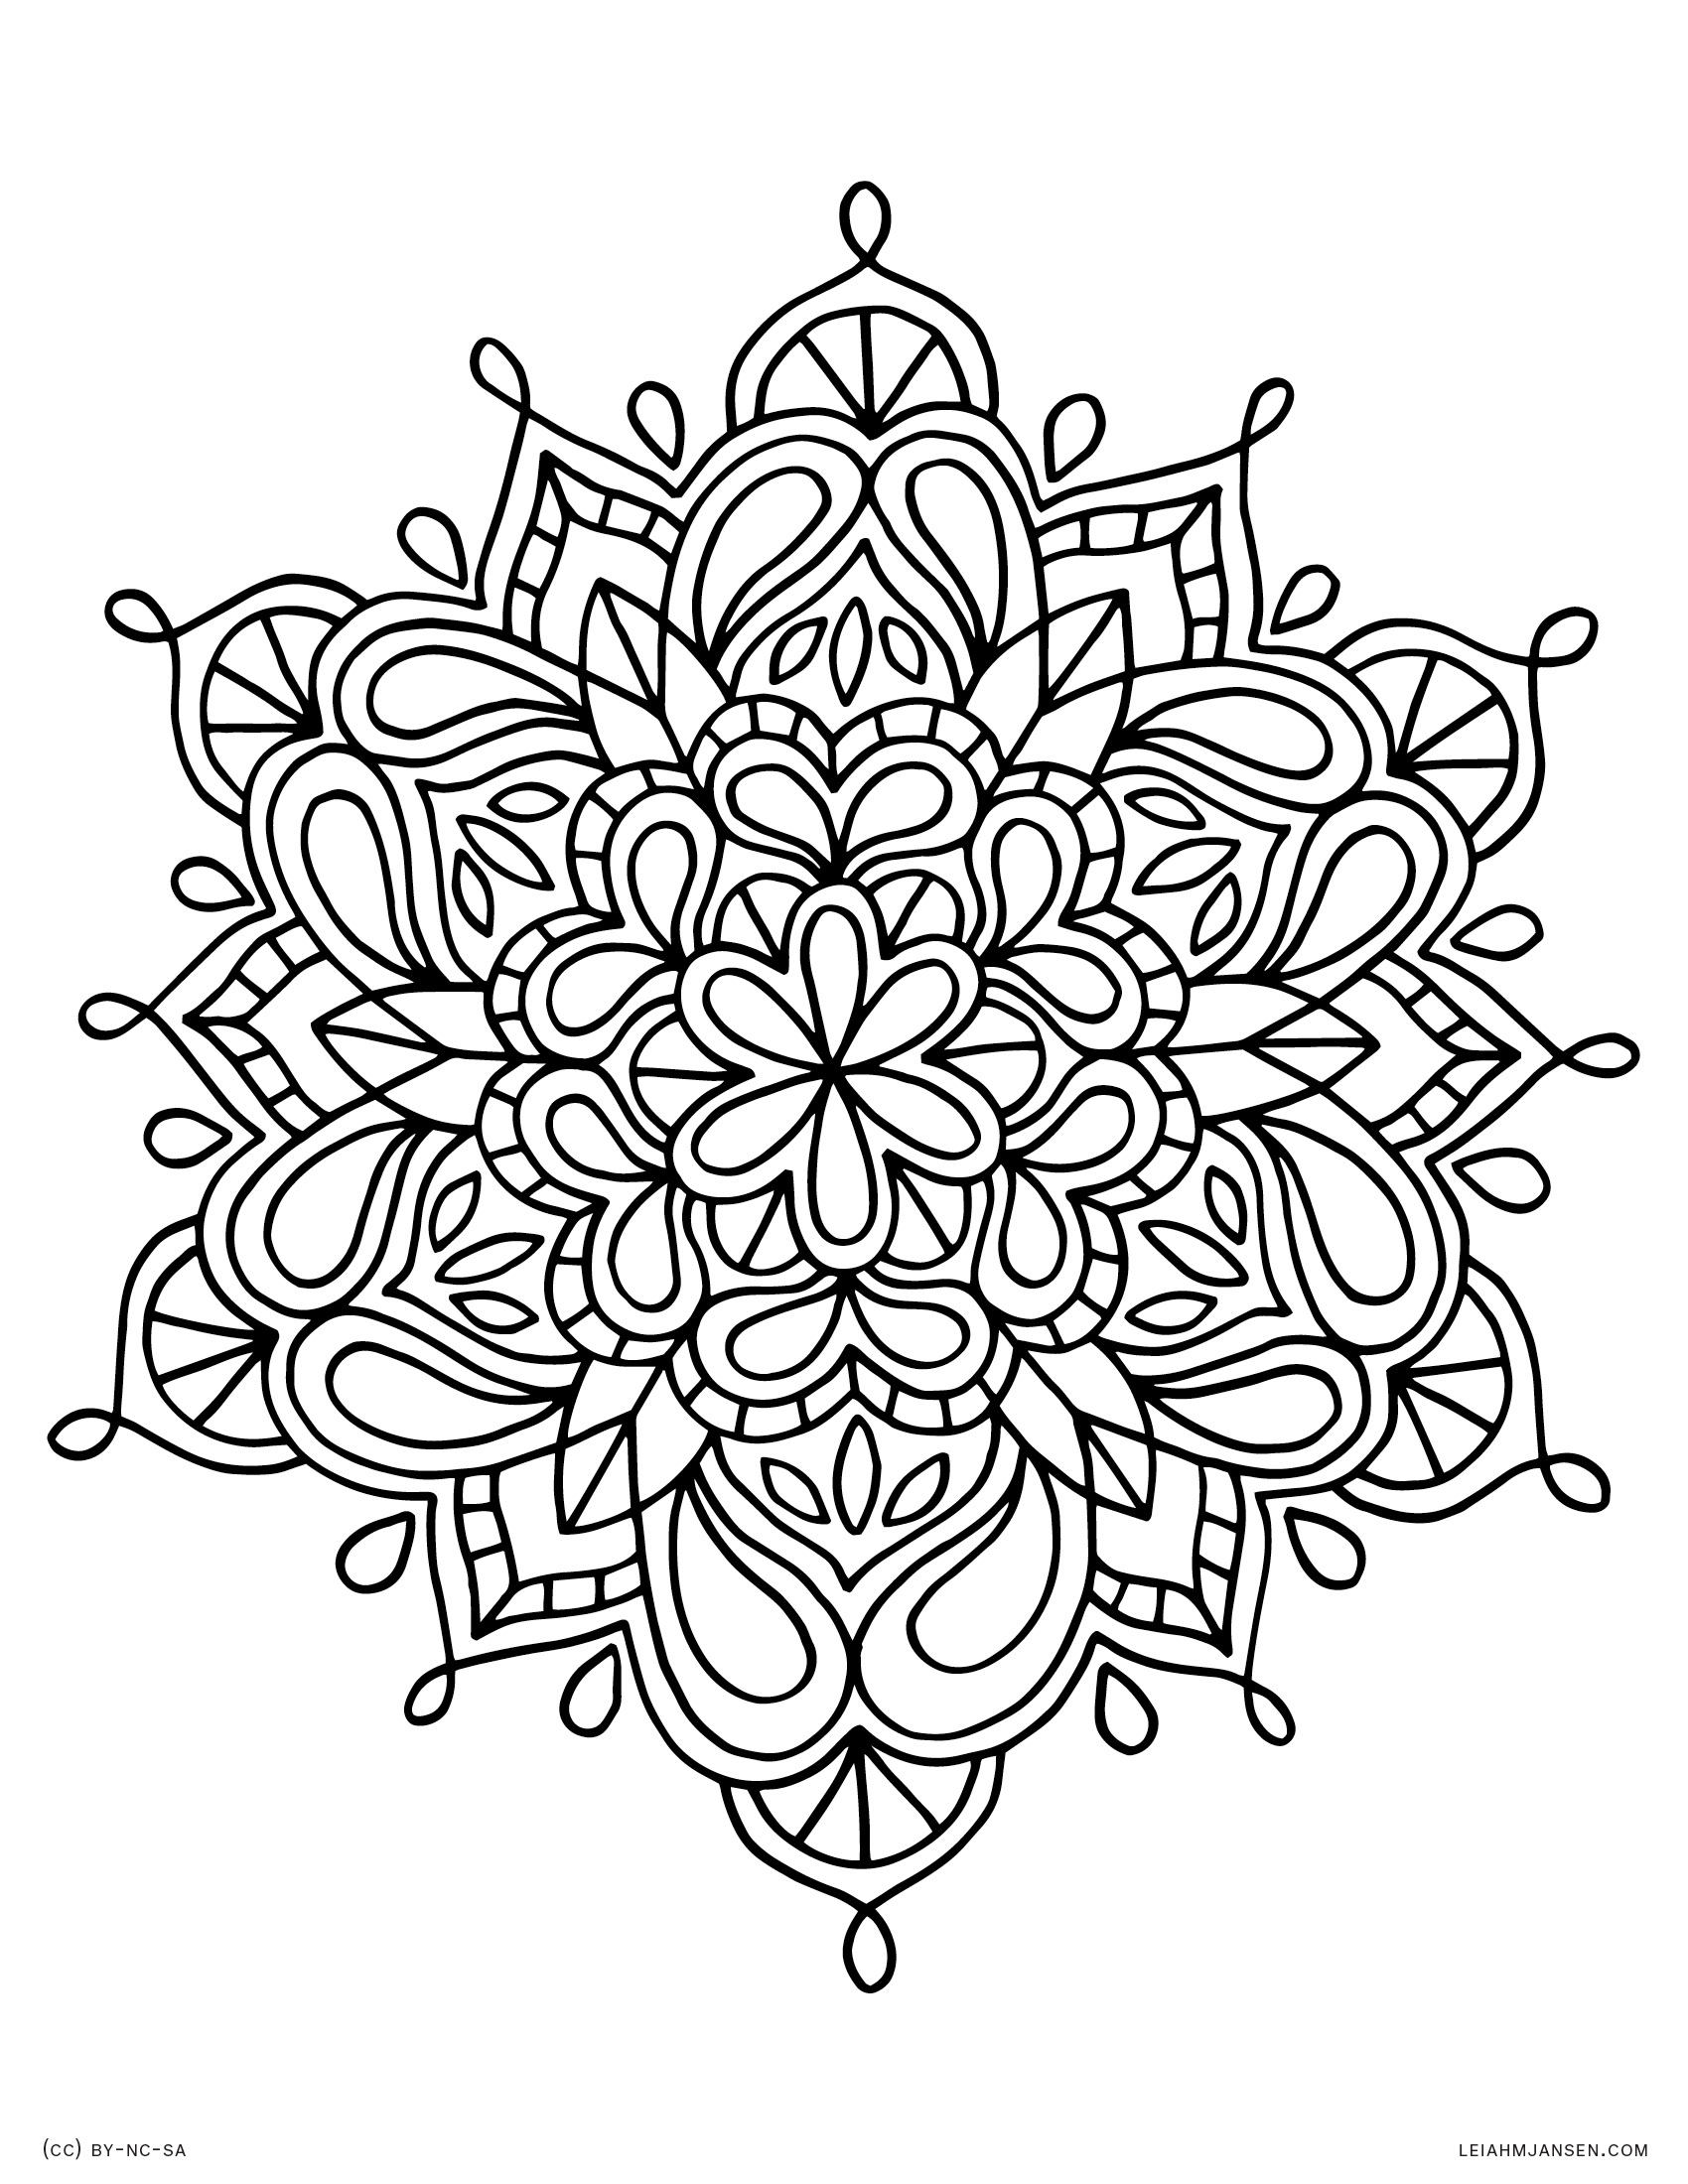 Stay Home & Color: A collection of free coloring pages to help you ... | 2200x1700